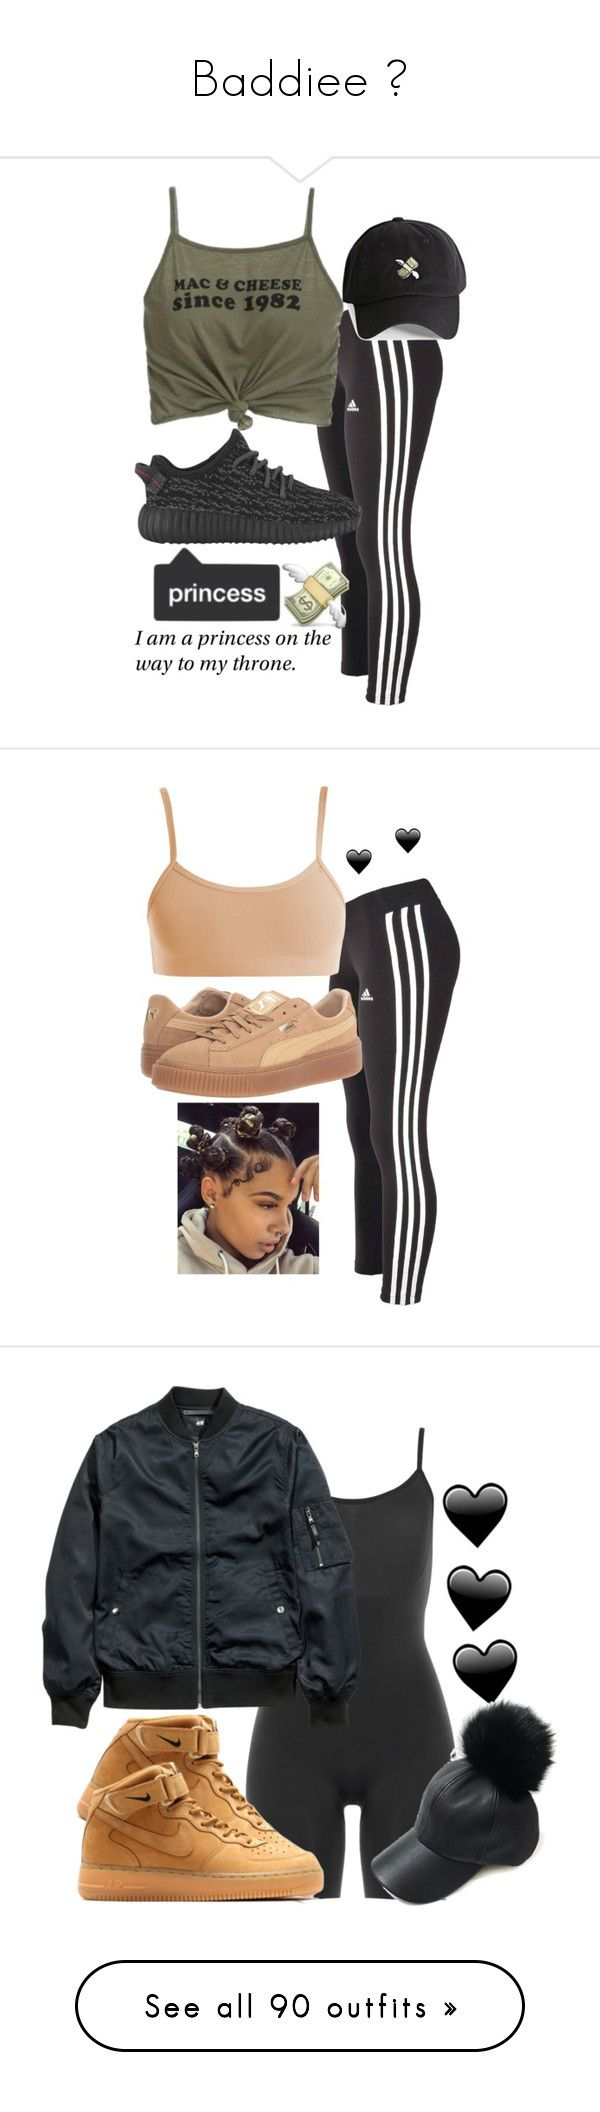 """Baddiee ✨"" by bxbysnoop ❤ liked on Polyvore featuring adidas, 21 Men, Puma, SPANX, H&M, NIKE, Original Penguin, Bobbi Brown Cosmetics, Hollister Co. and Karl Lagerfeld"